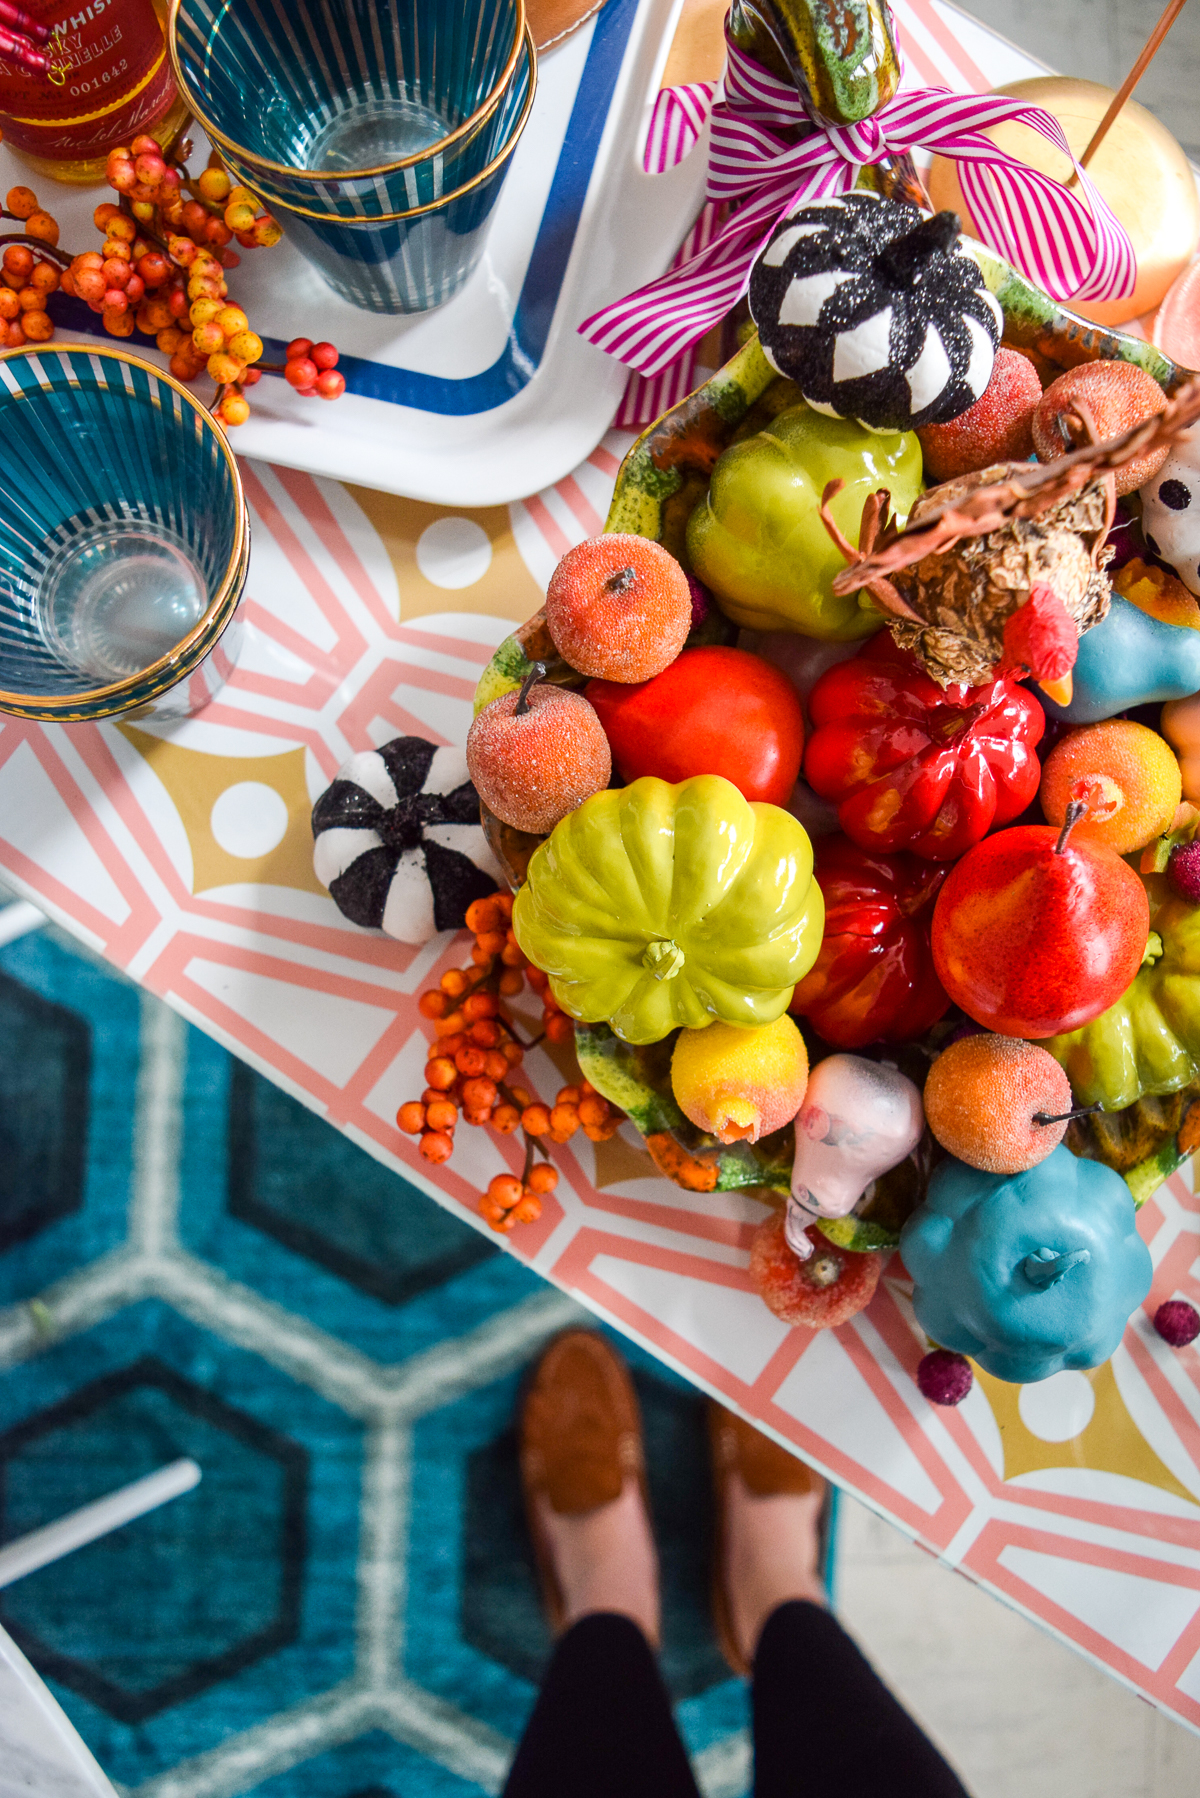 downwards view of a sidetable with a colourful cornucopia